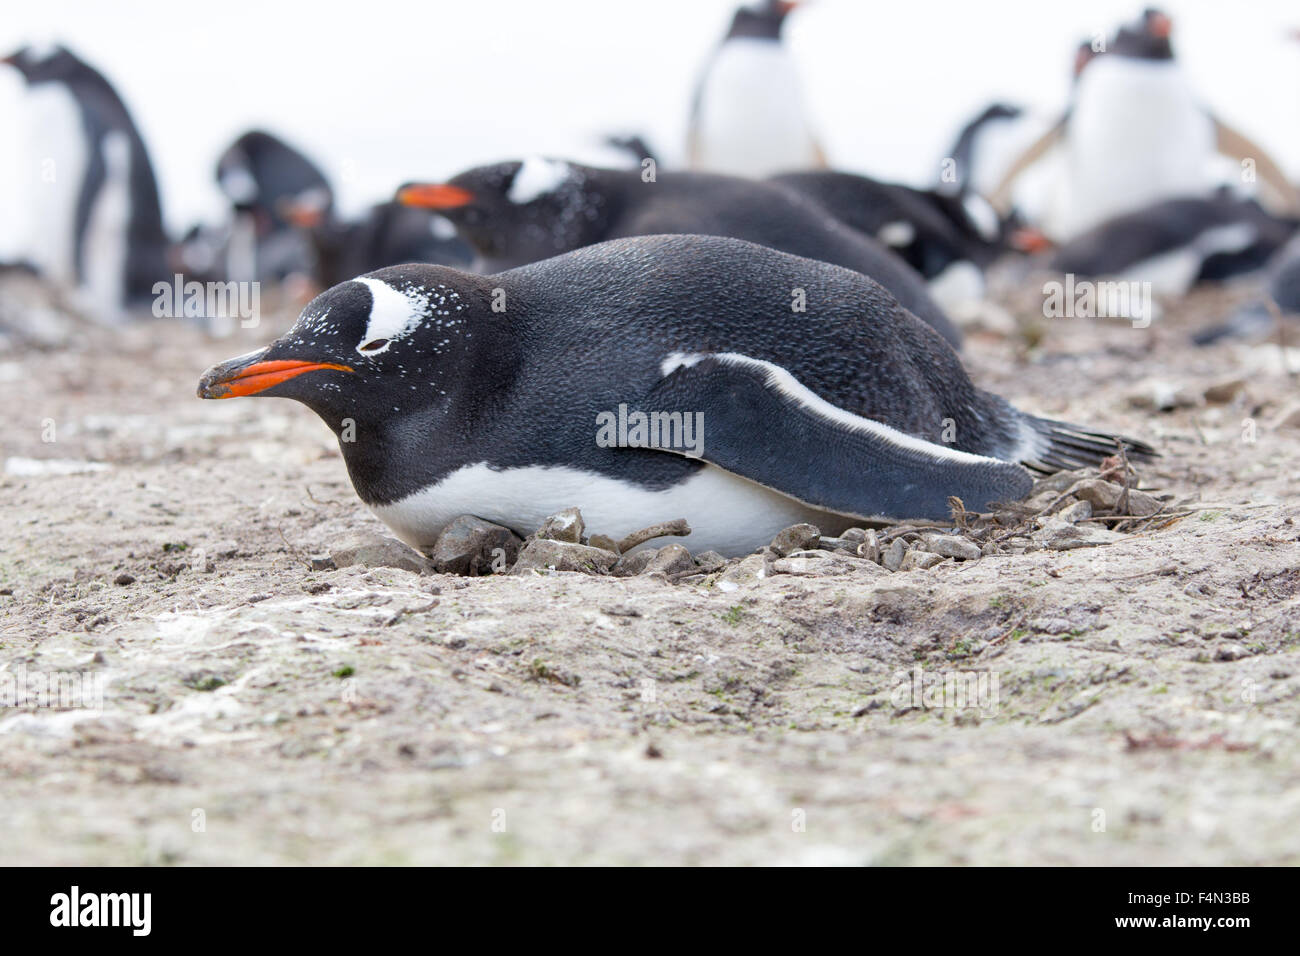 Gentoo penguin lying on it's nest made from rocks and twigs, Falkland Islands. - Stock Image